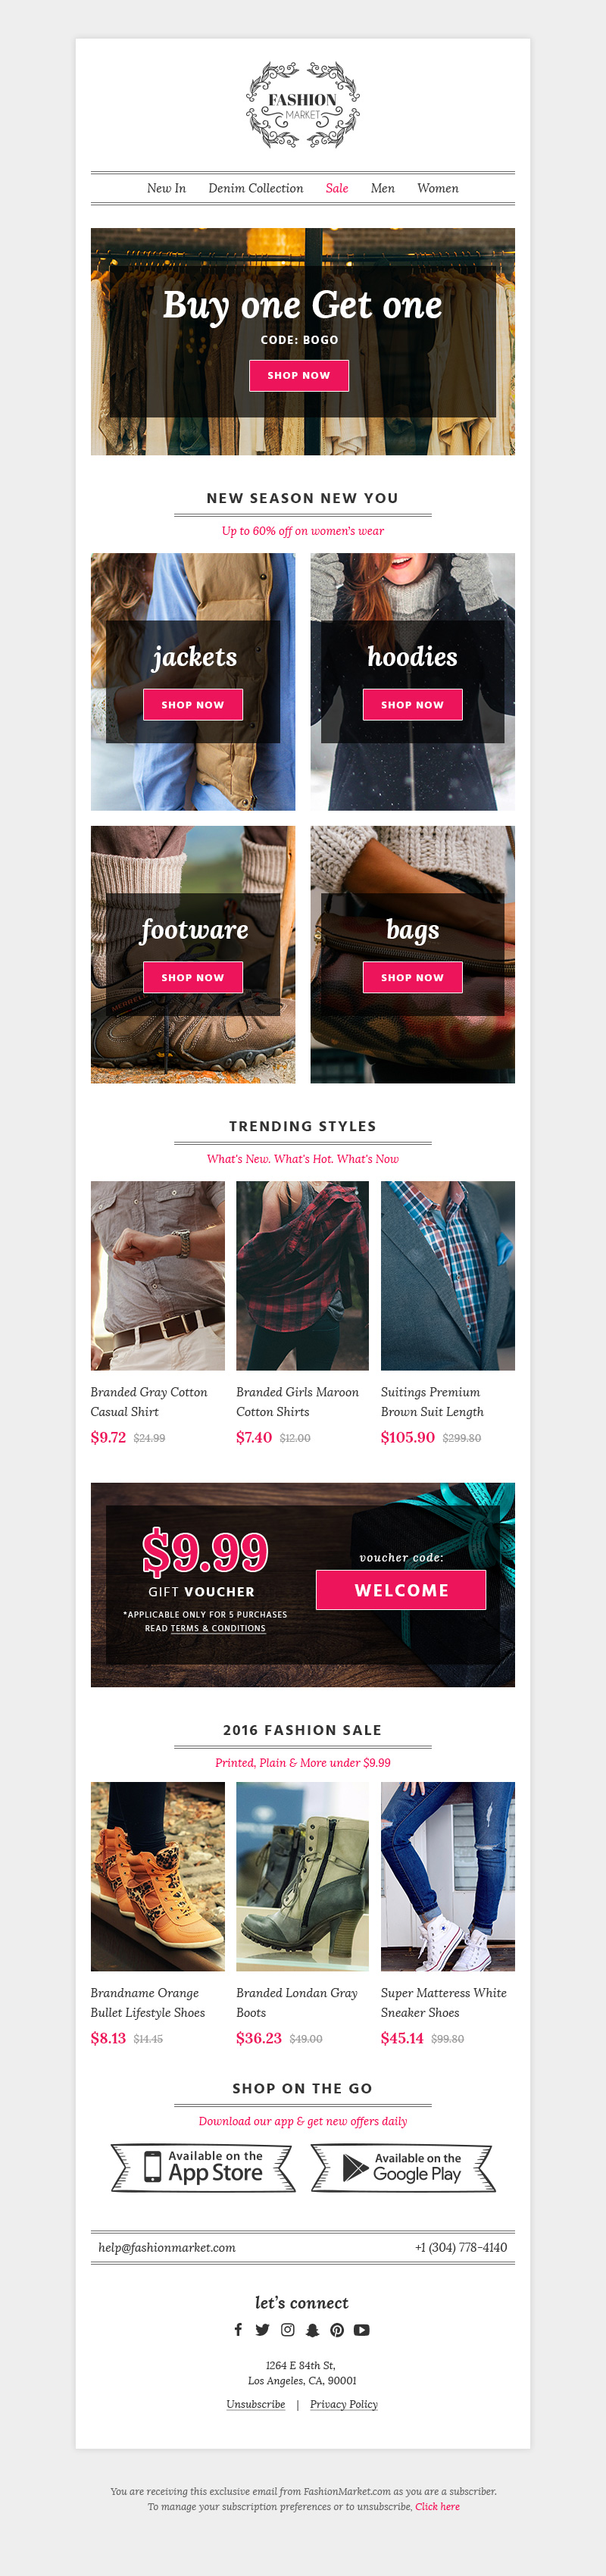 FashionMarket ECommerce Newsletter PSD HTML Template Free HTML - Newsletter html template